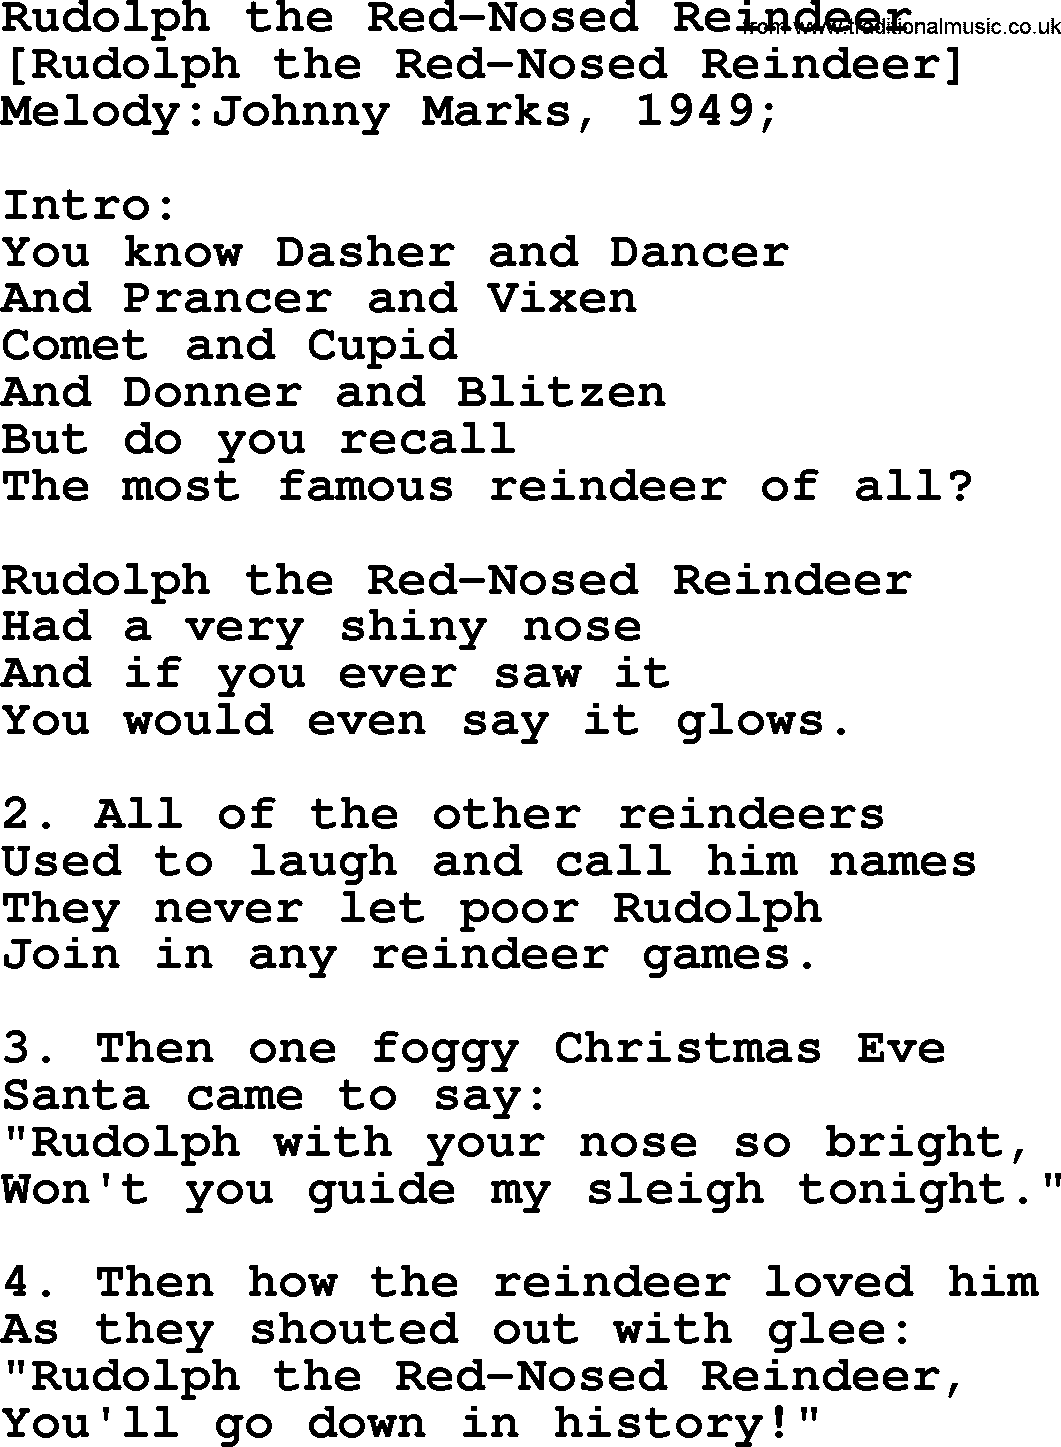 old american song rudolph the red nosed reindeer lyrics